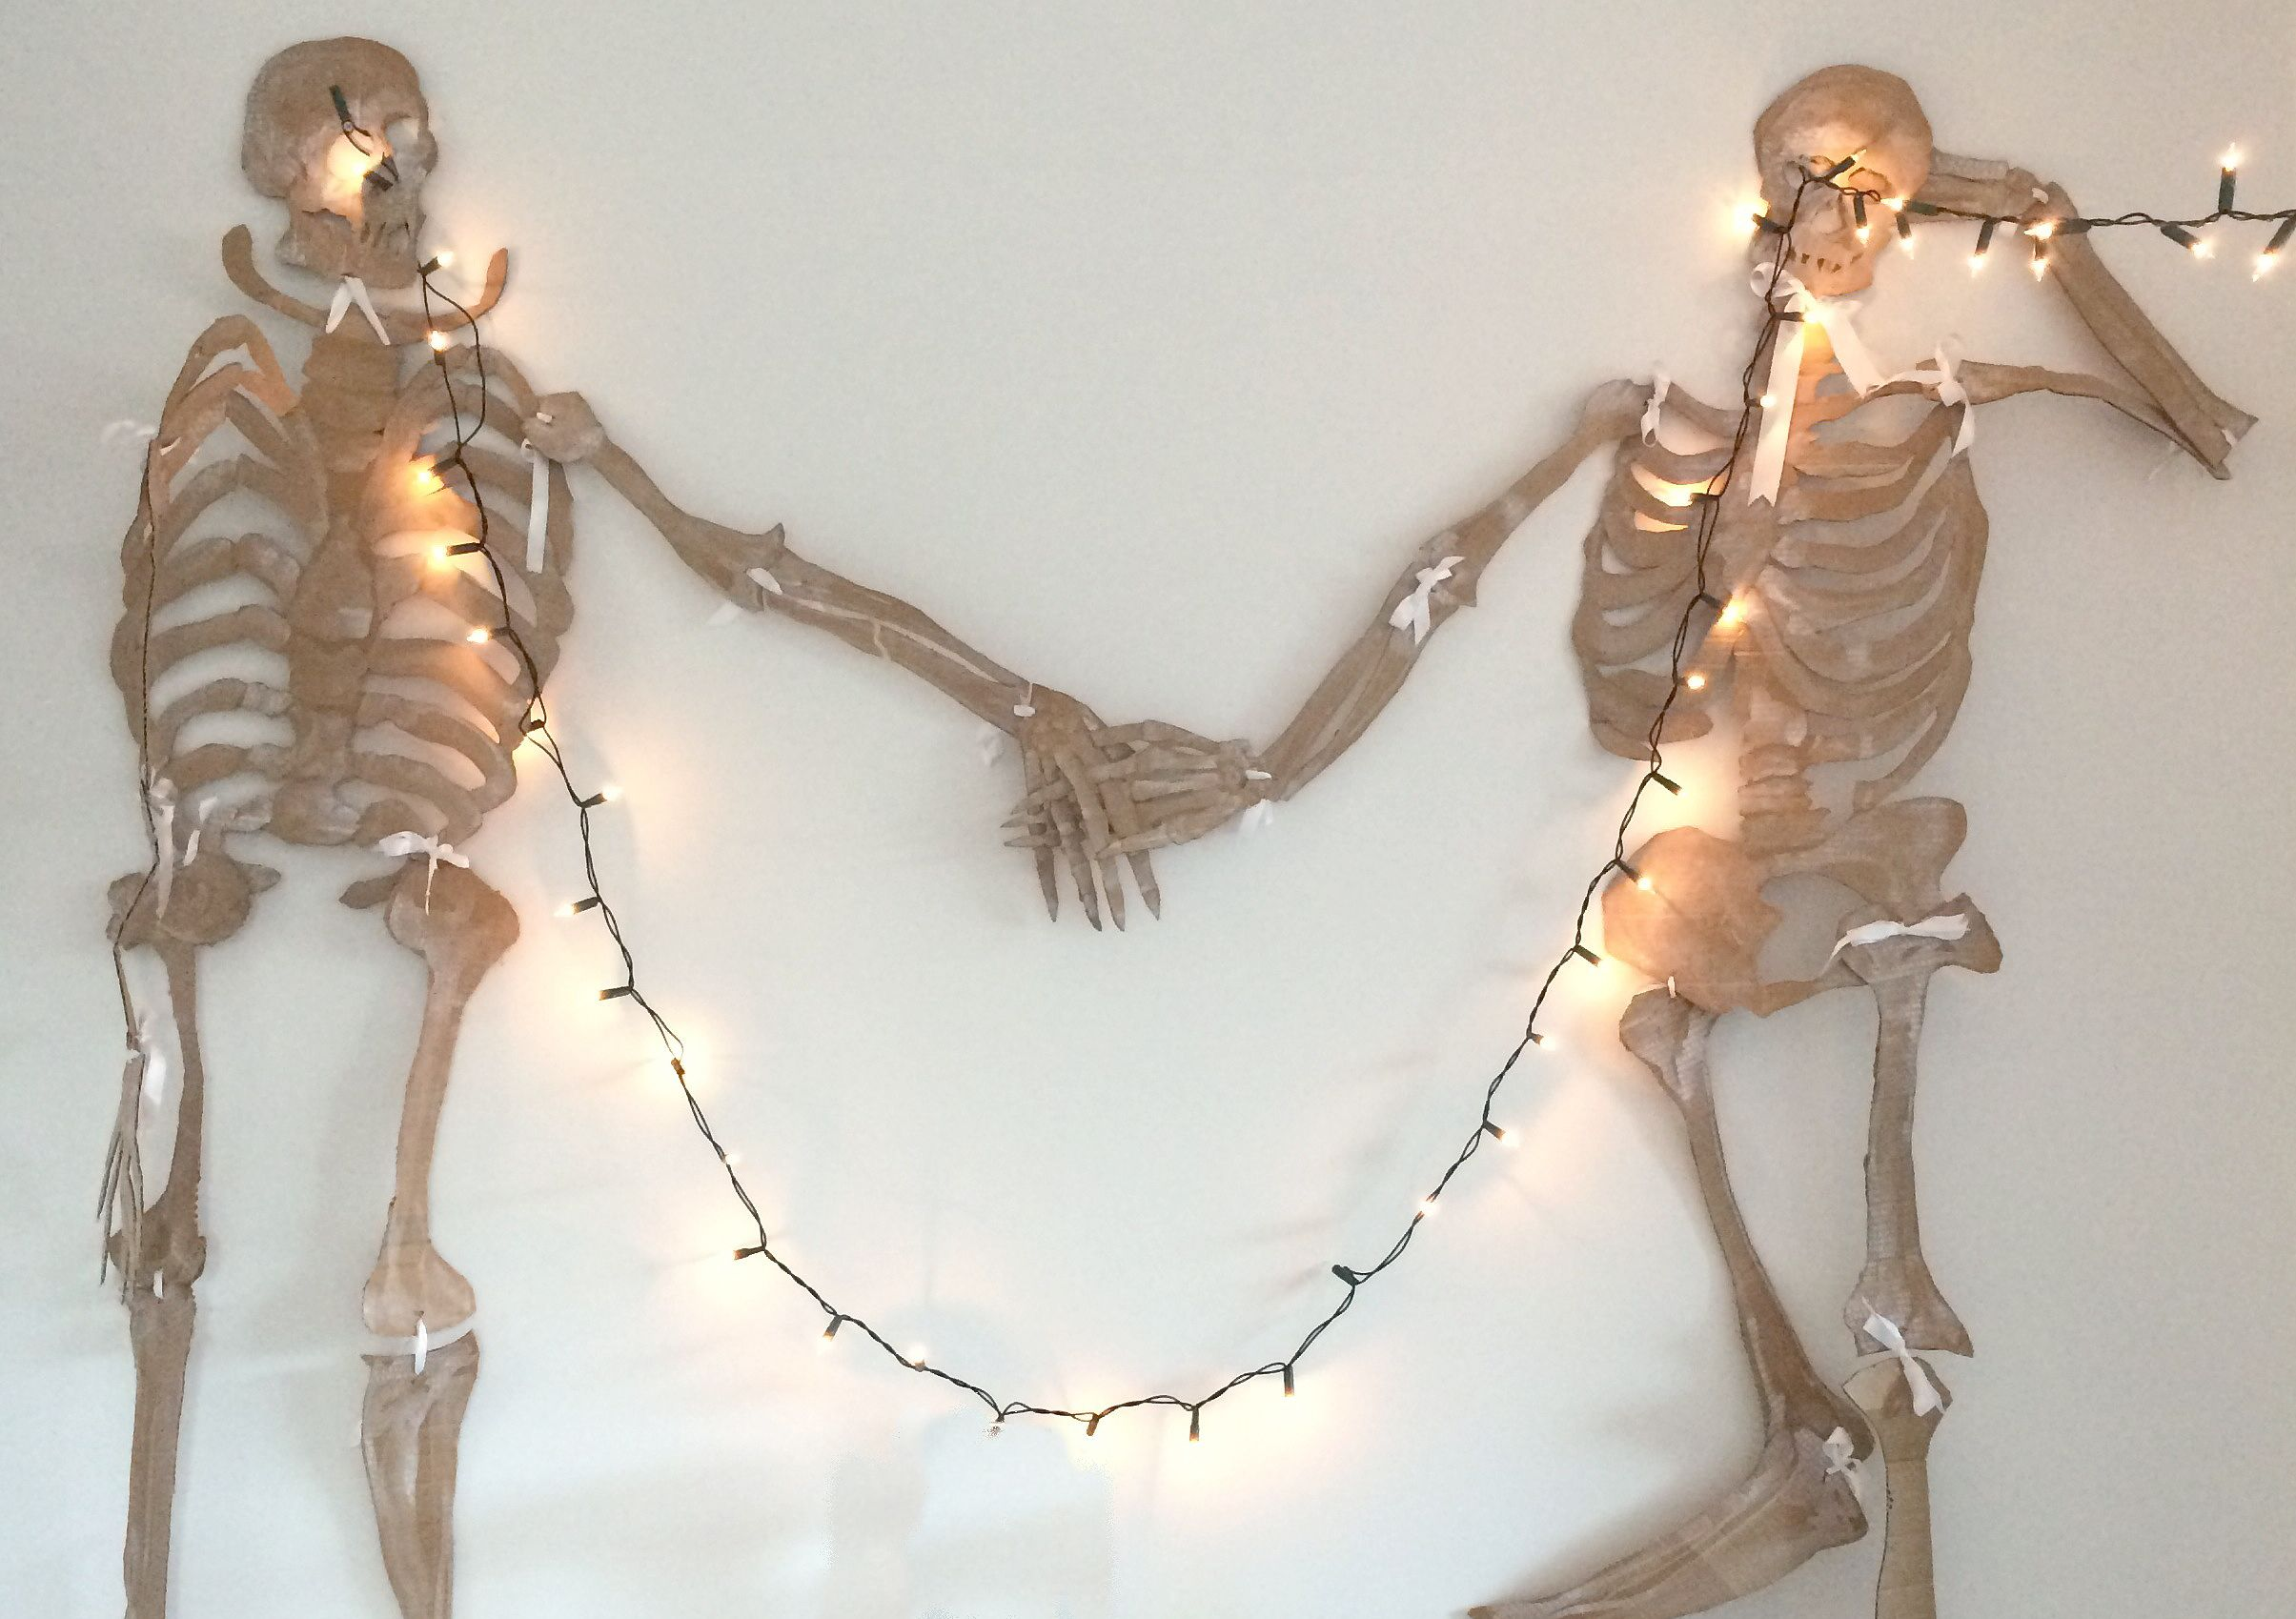 Home Tour: Alexa's Skeleton Party. Home-made Halloween Skeletons. Cut outs of cardboard tied together with ribbon at the joints. A brilliant DIY for the kids! #hometour #diy #halloween #skeletons #handmade